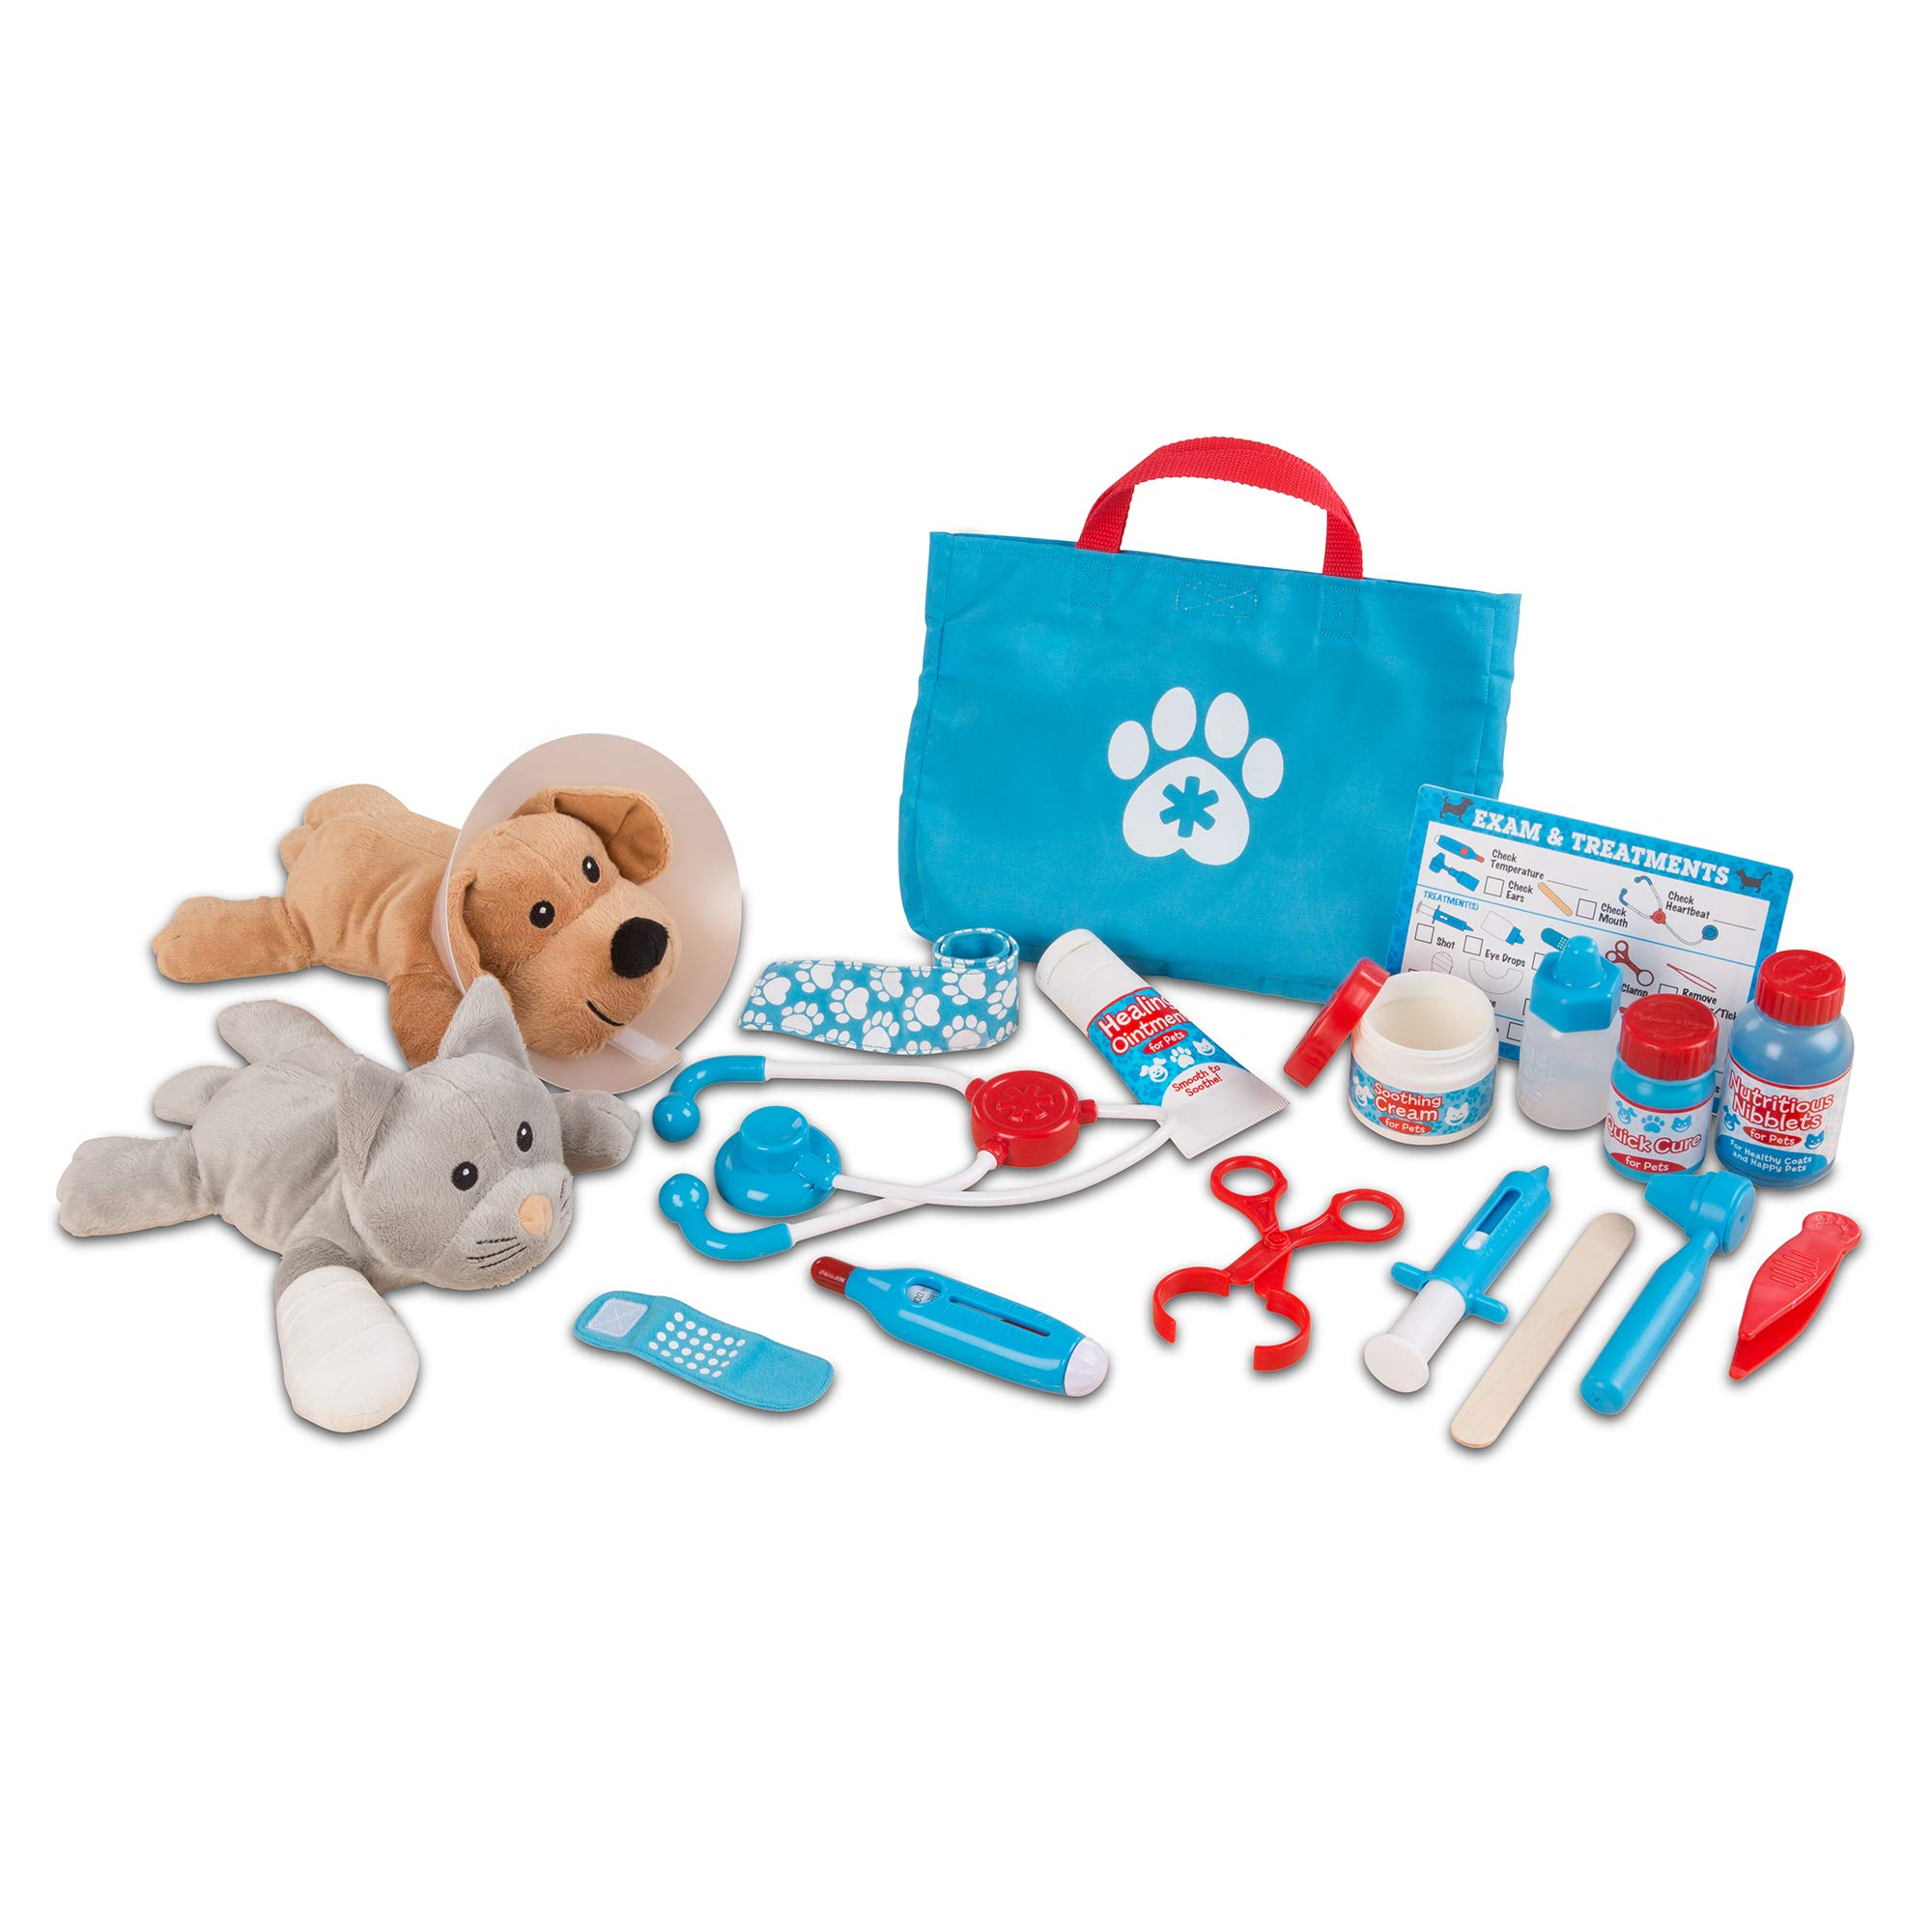 Melissa & Doug Examine & Treat Pet Vet Play Set (Animal & People Play Sets, Helps Children Develop Empathy, 24 Pieces, Great Gift for Girls and Boys - Best for 3, 4, 5 Year Olds and Up) by Melissa & Doug